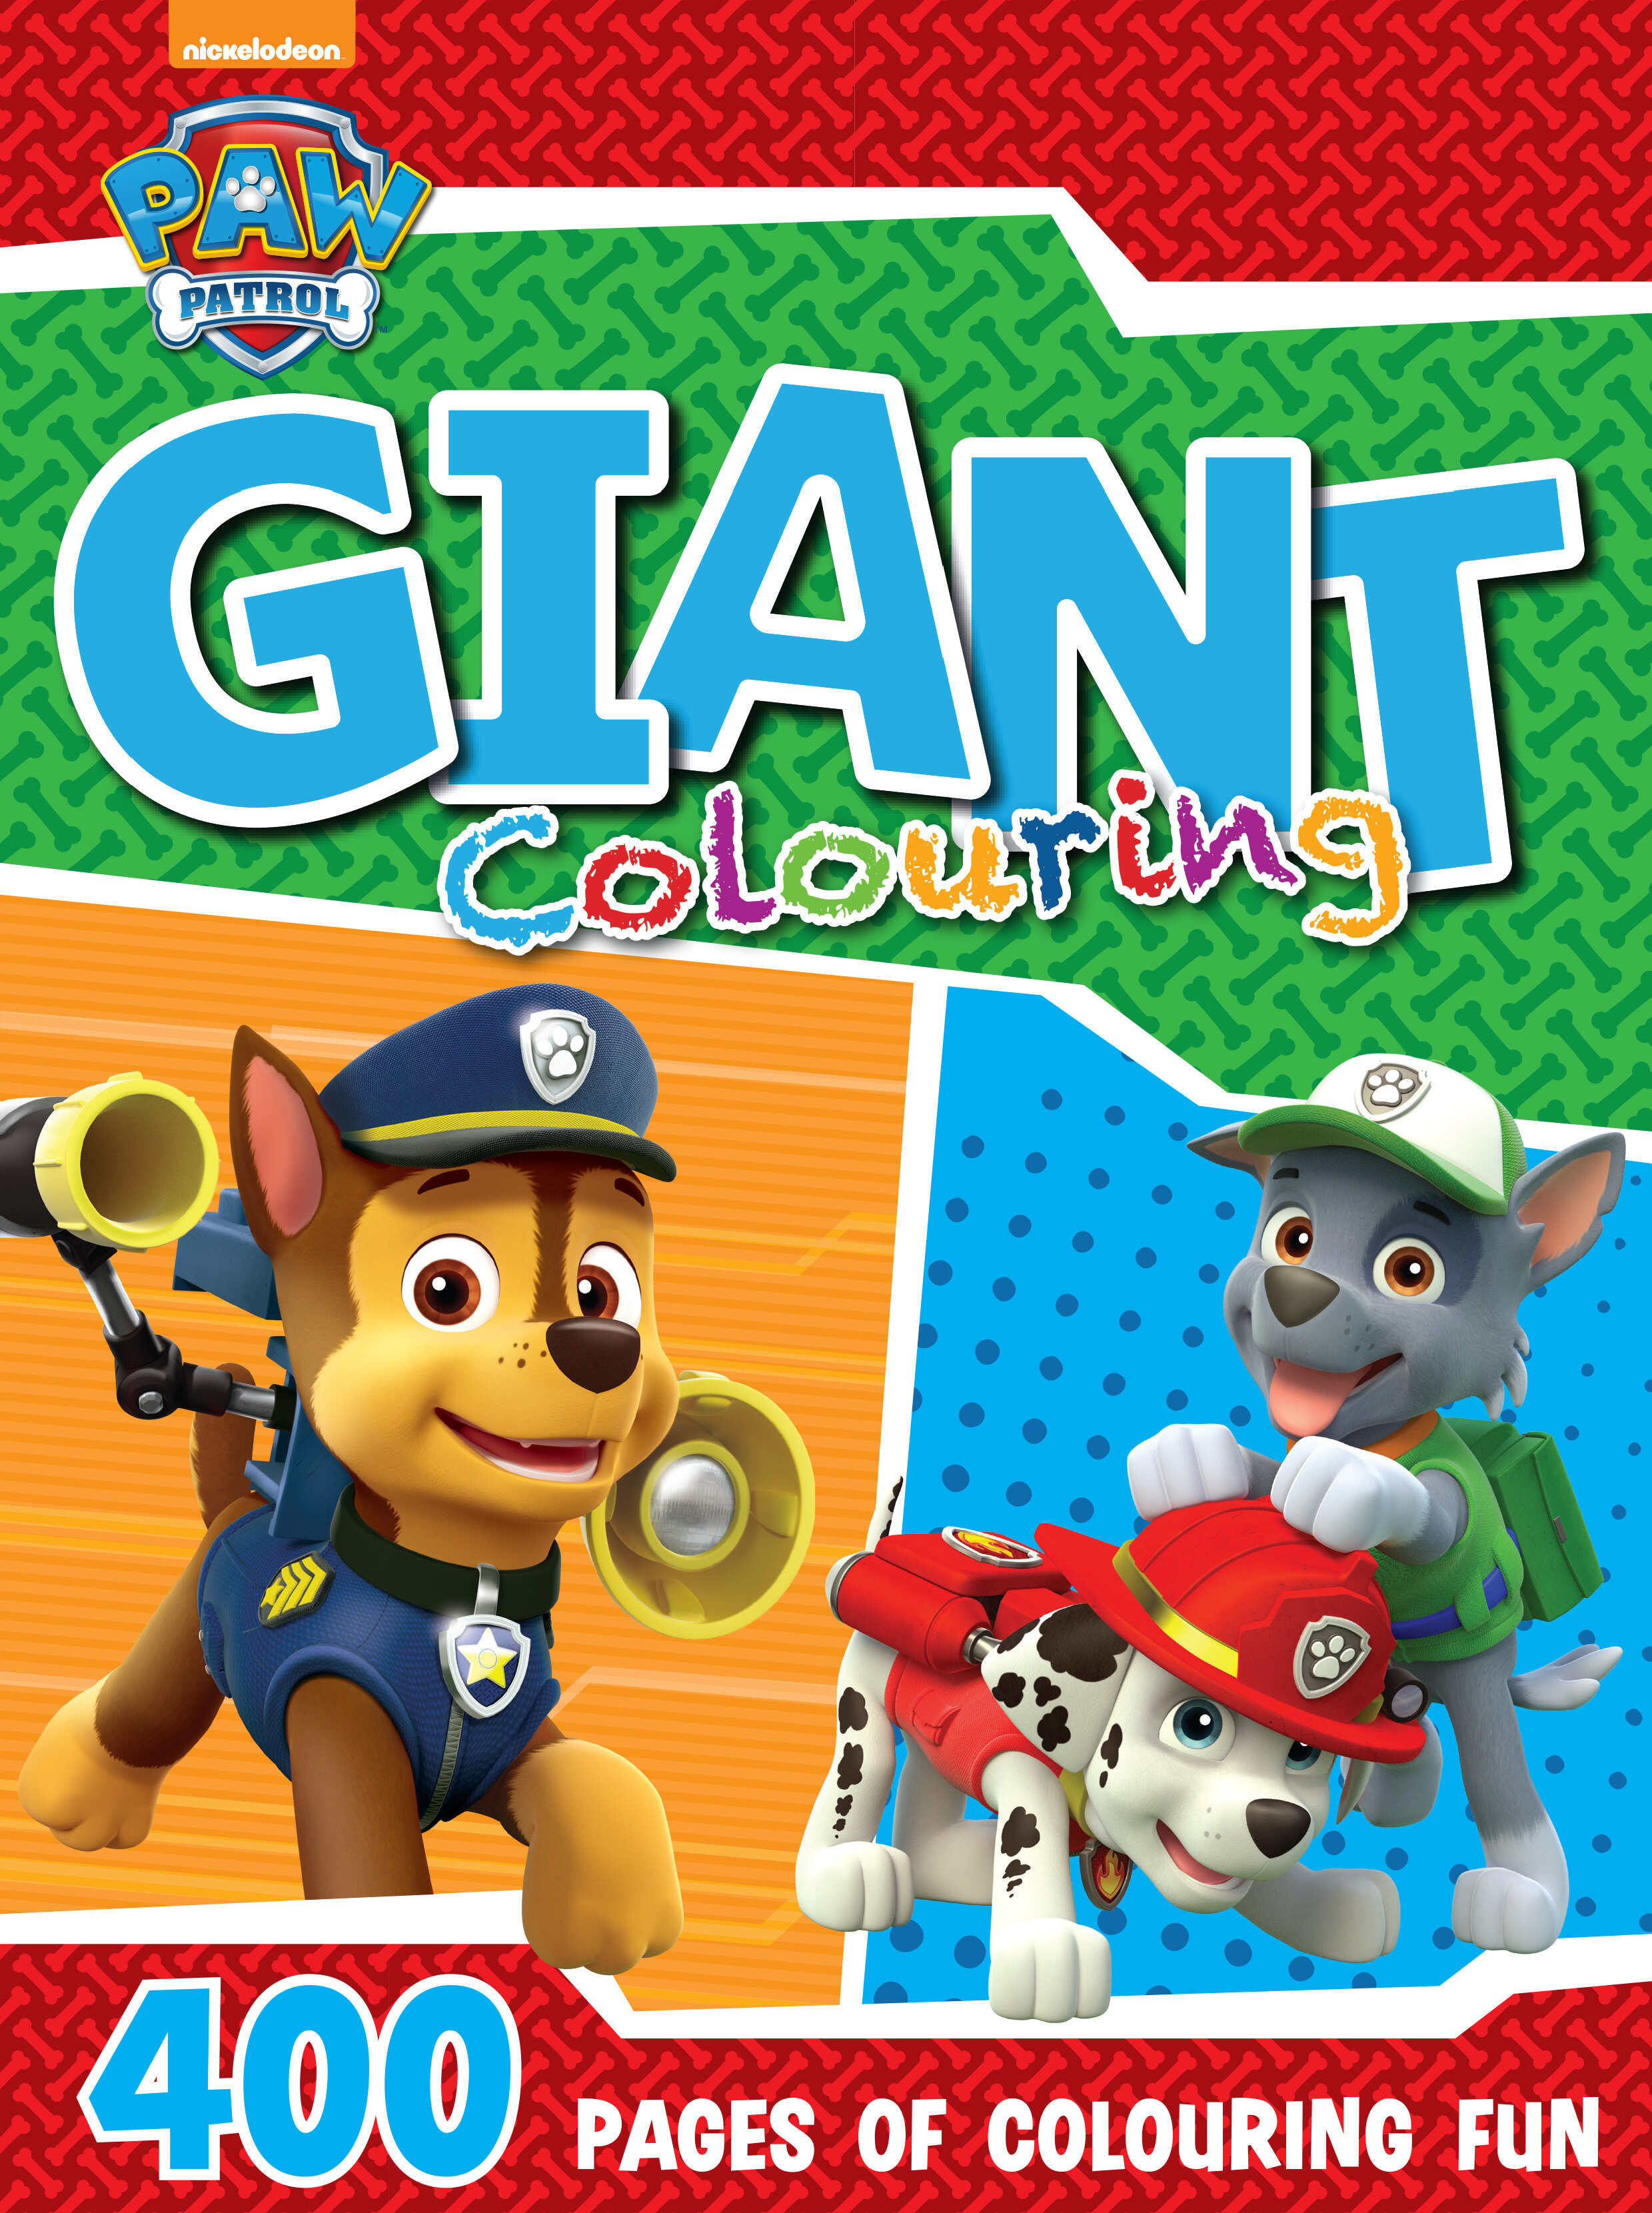 Paw Patrol - 400pg Giant Colouring Book